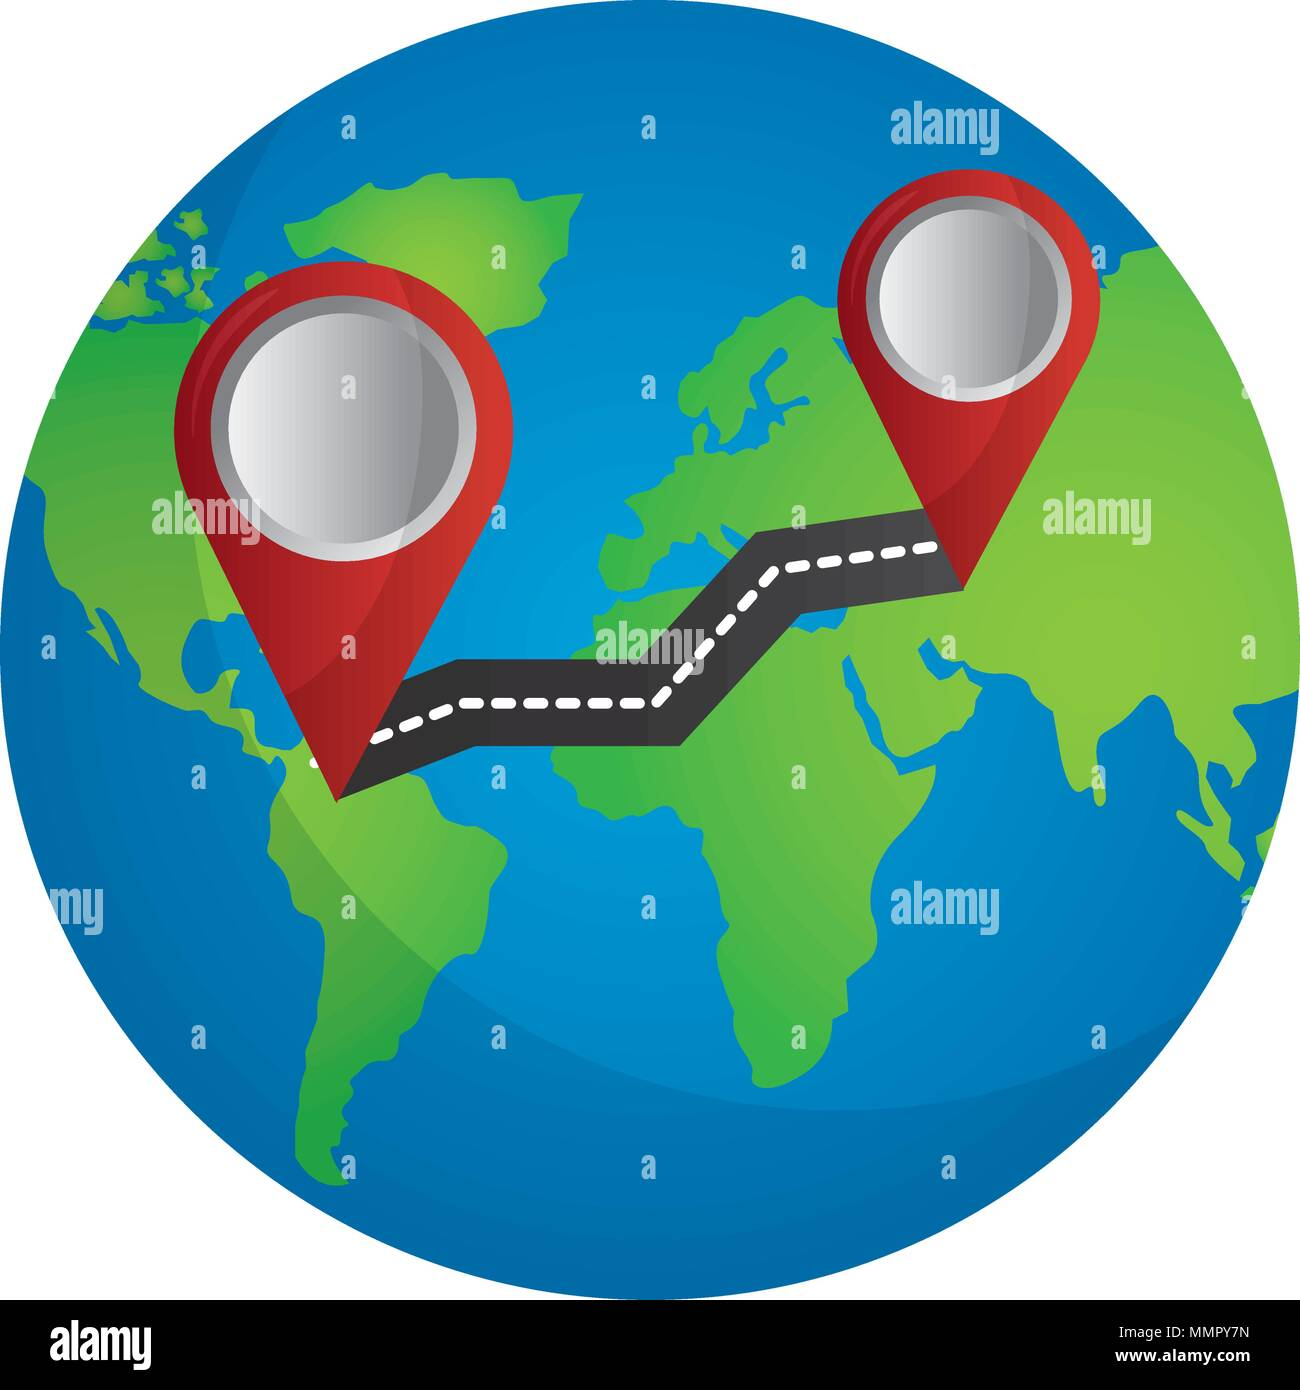 World Map Gps.World Map Route Travel Finding Gps Navigation Vector Illustration